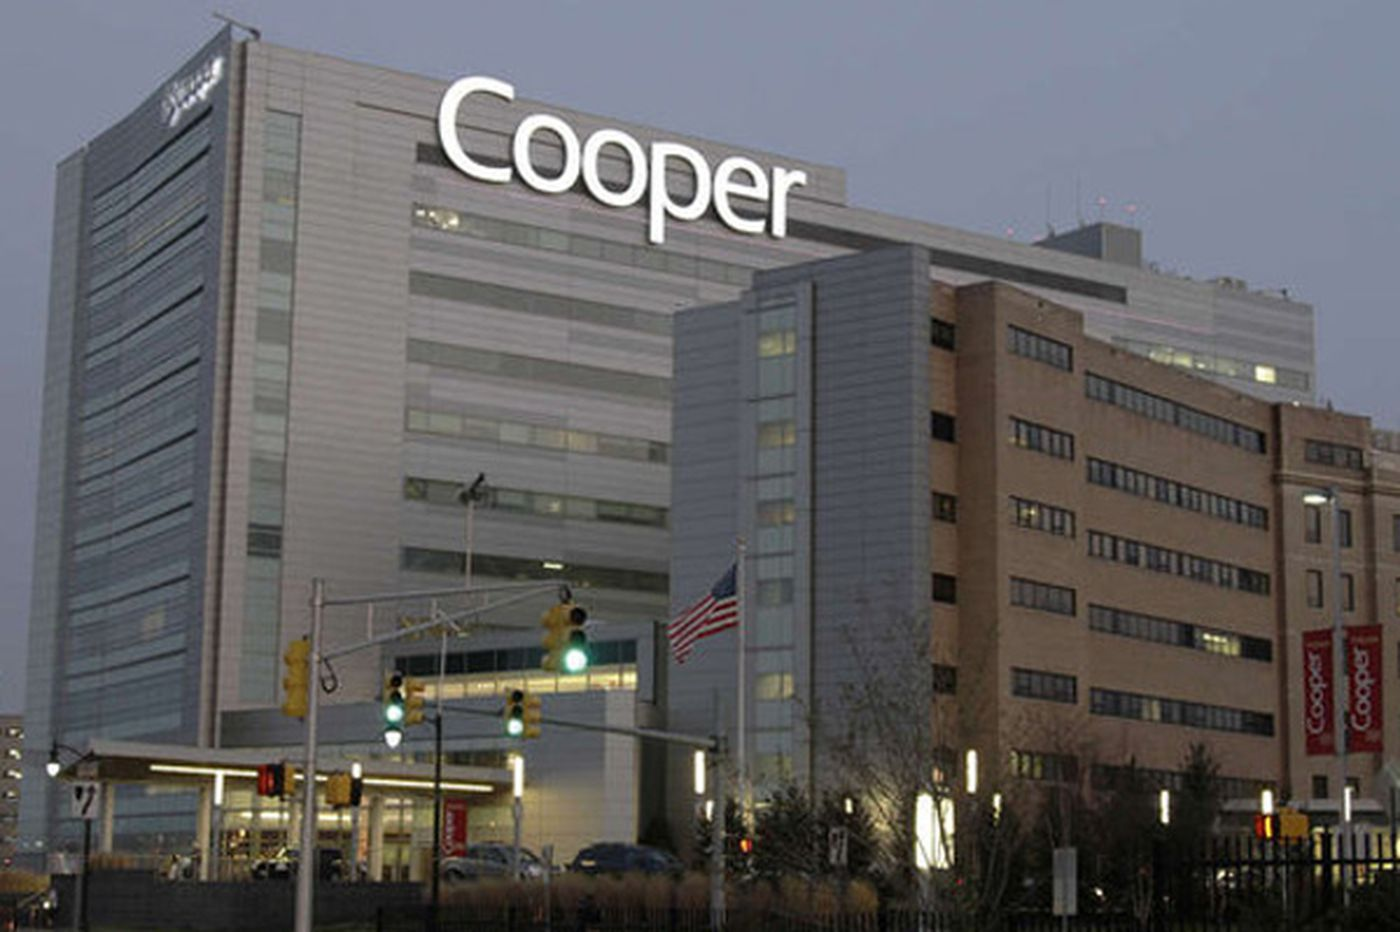 Data on death rates: Two community hospitals edge out Cooper